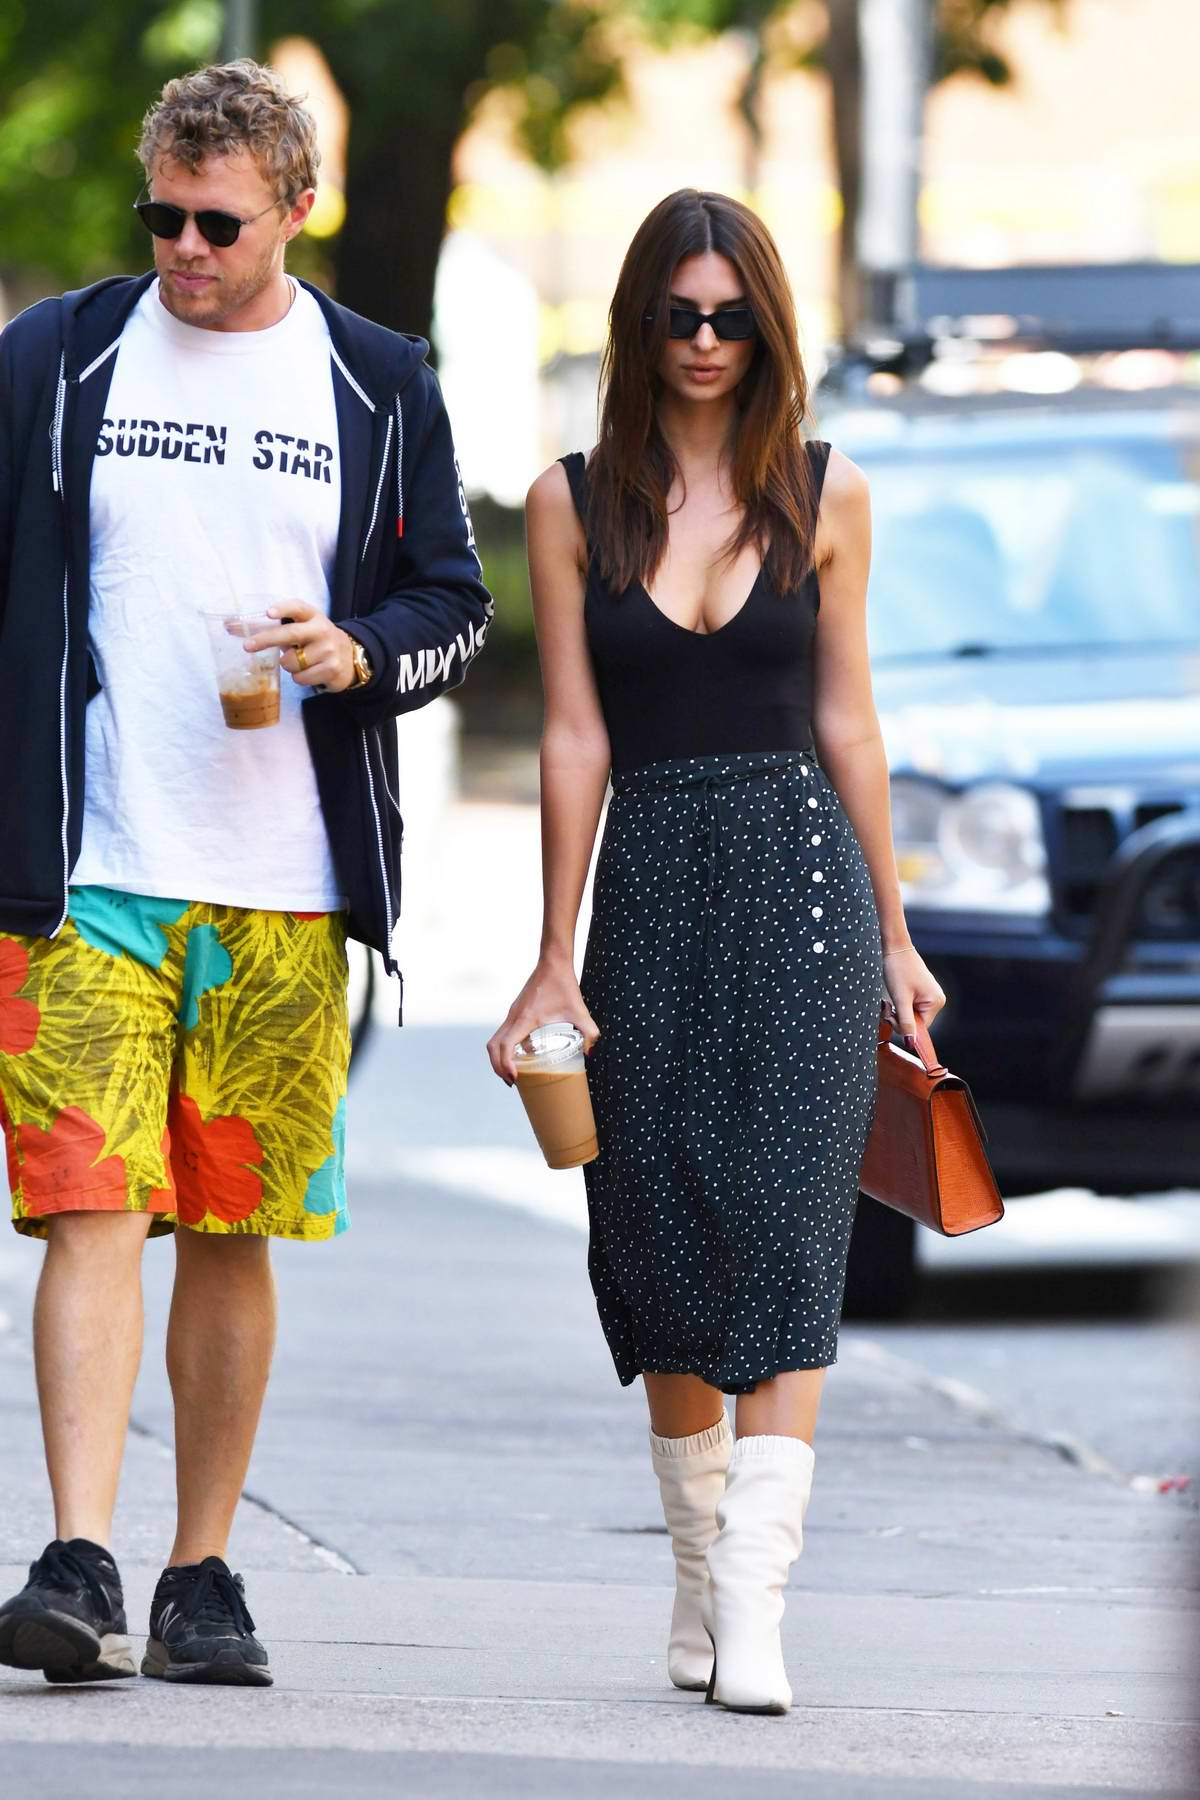 Emily Ratajkowski wore a black top with polka dot skirt and white boots as she stepped out for coffee with Sebastian Bear-McClard in New York City